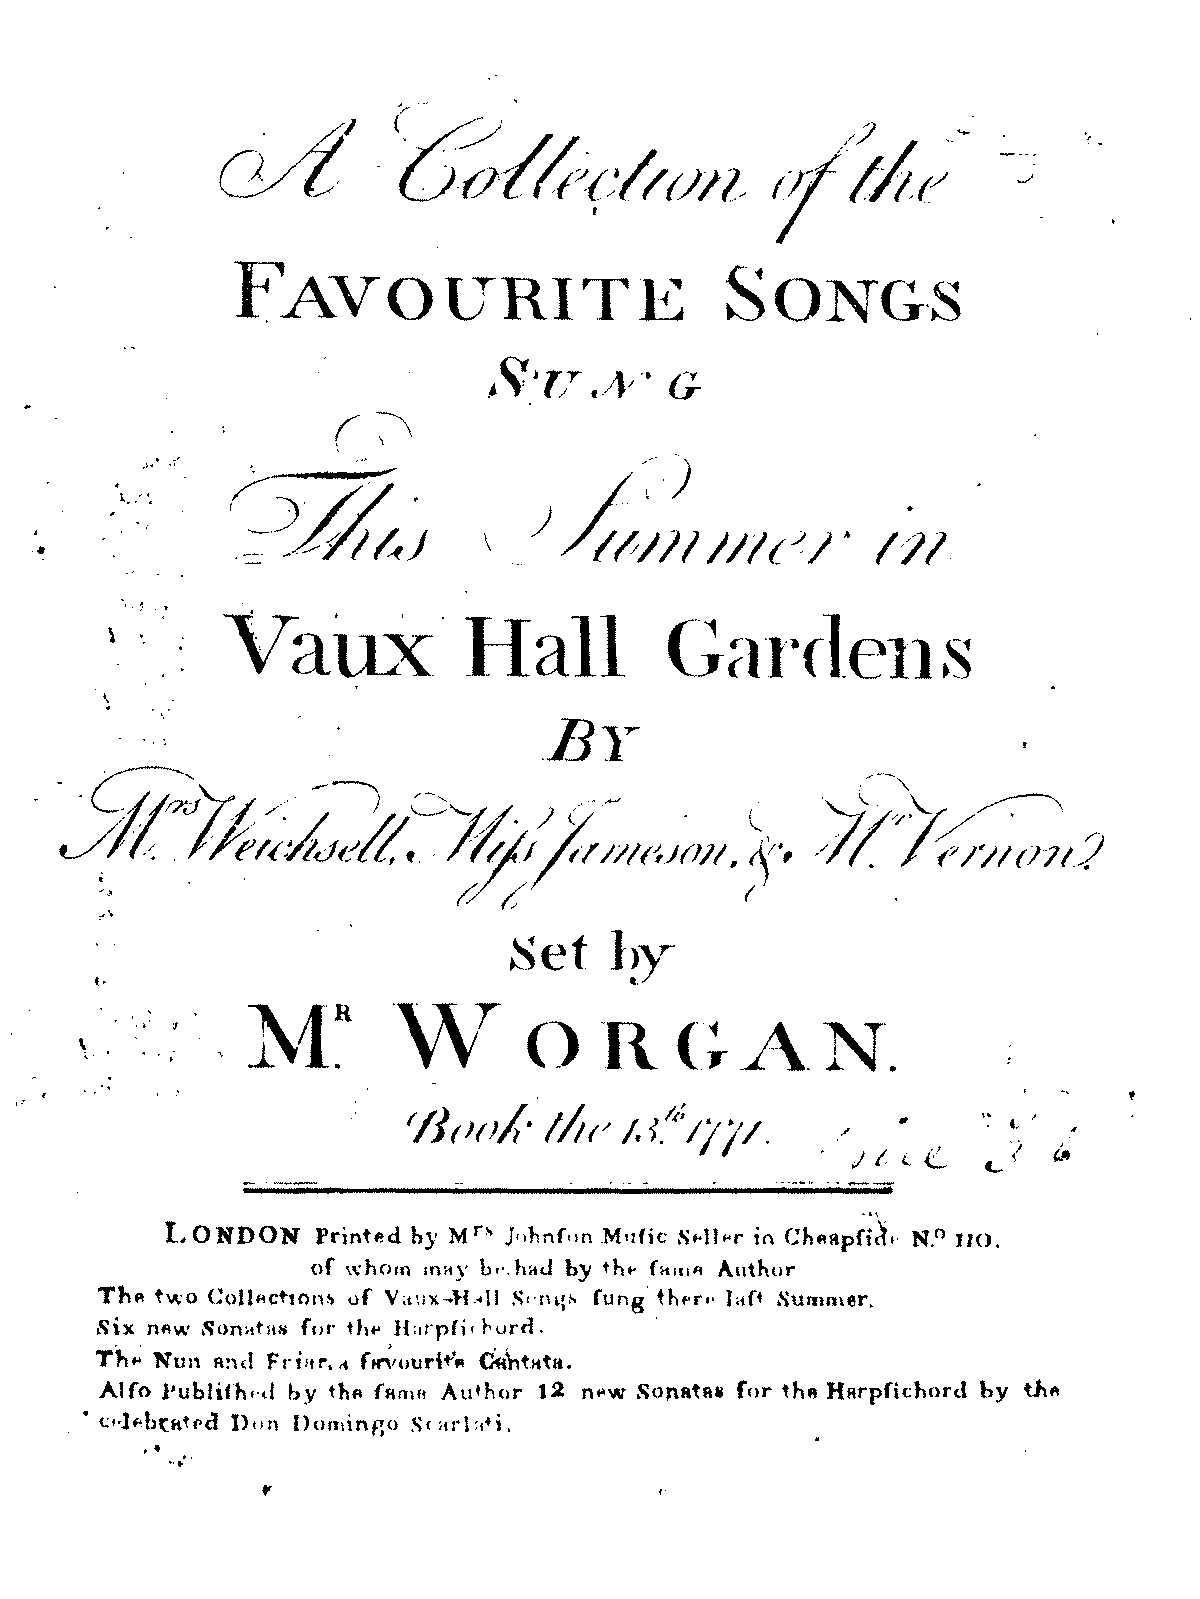 PMLP140644-worgan a coll of the favourite vauxhall songs 1771.pdf